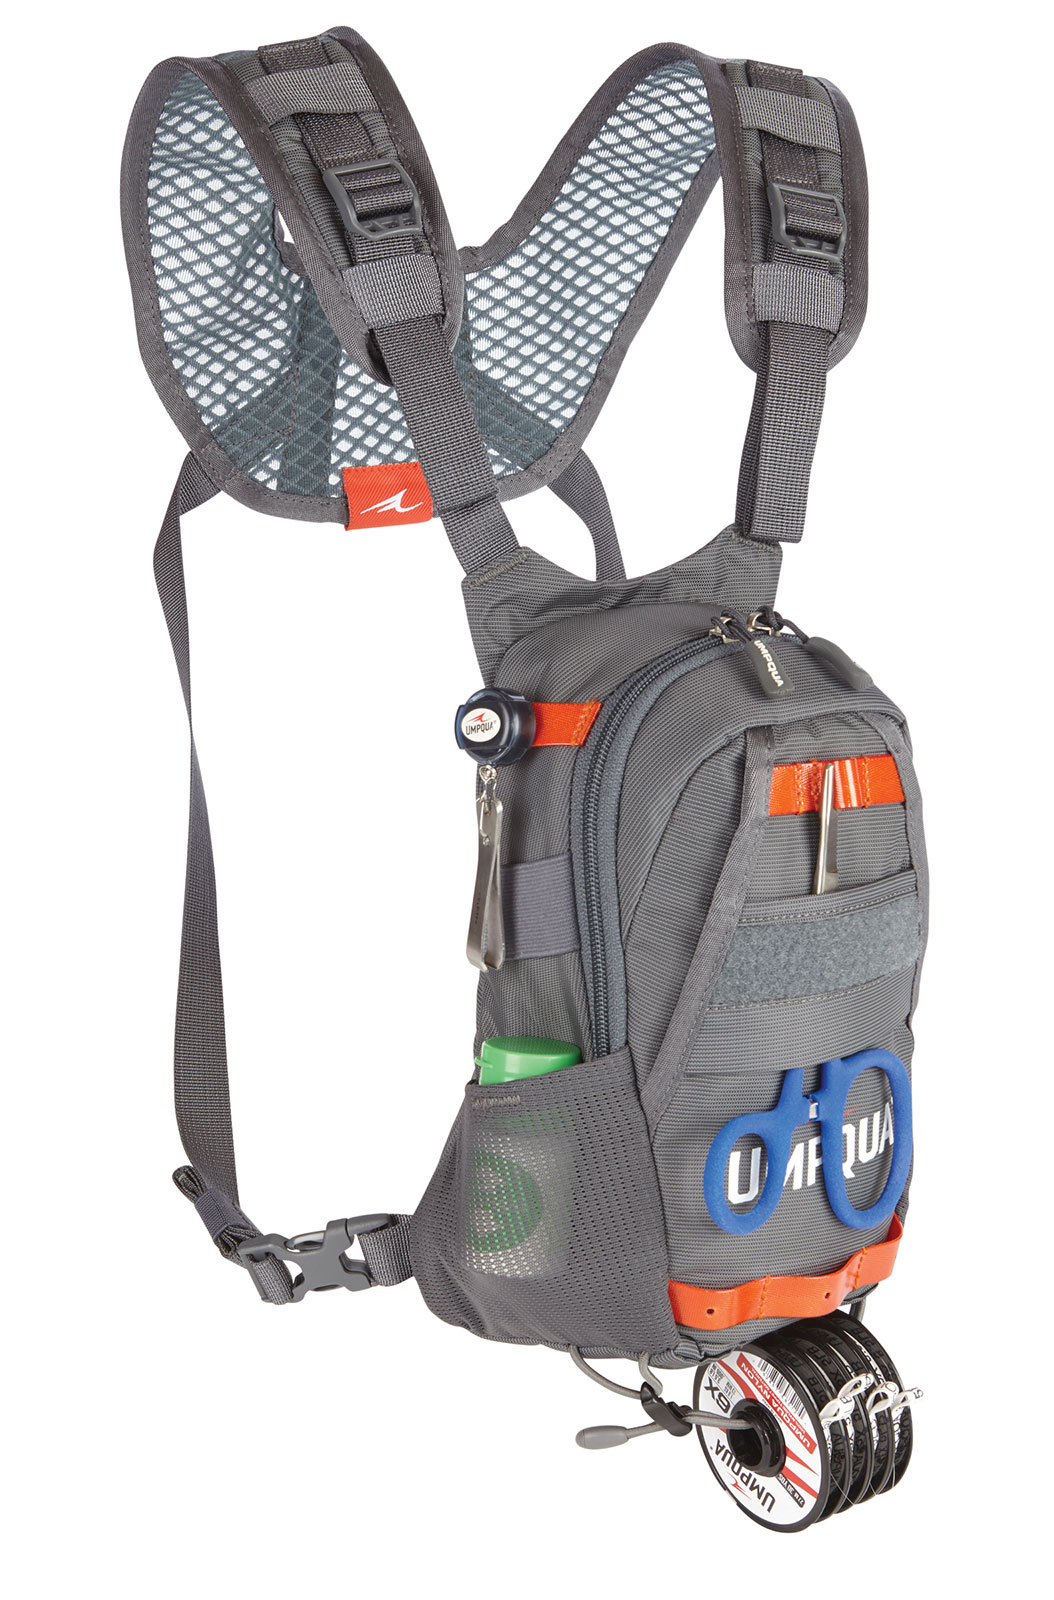 umpqua rock creek small chest pack for fly fishing bag ebay